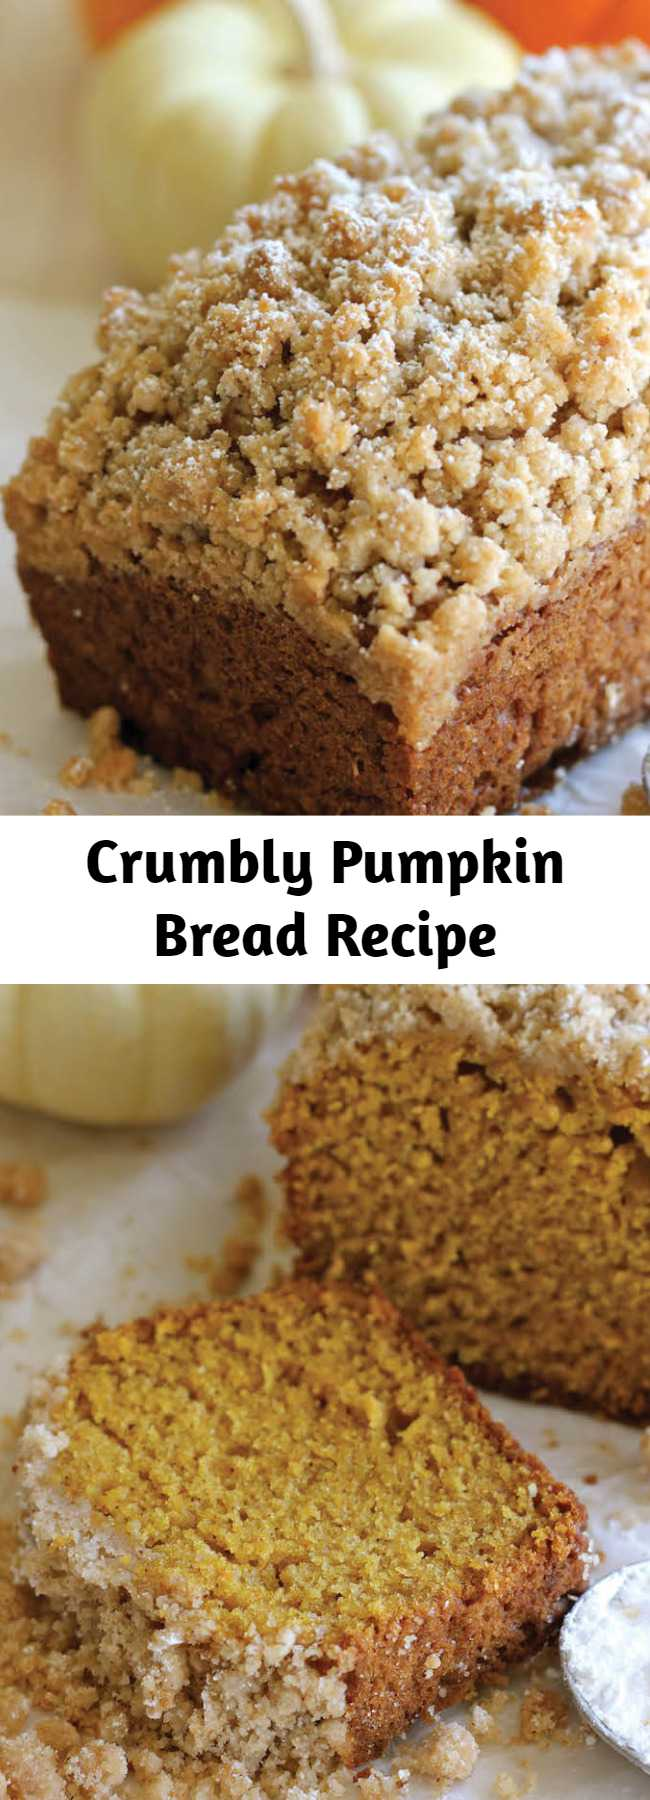 Crumbly Pumpkin Bread Recipe - With lightened-up options, this can be eaten guilt-free! And the crumb topping is out of this world amazing!